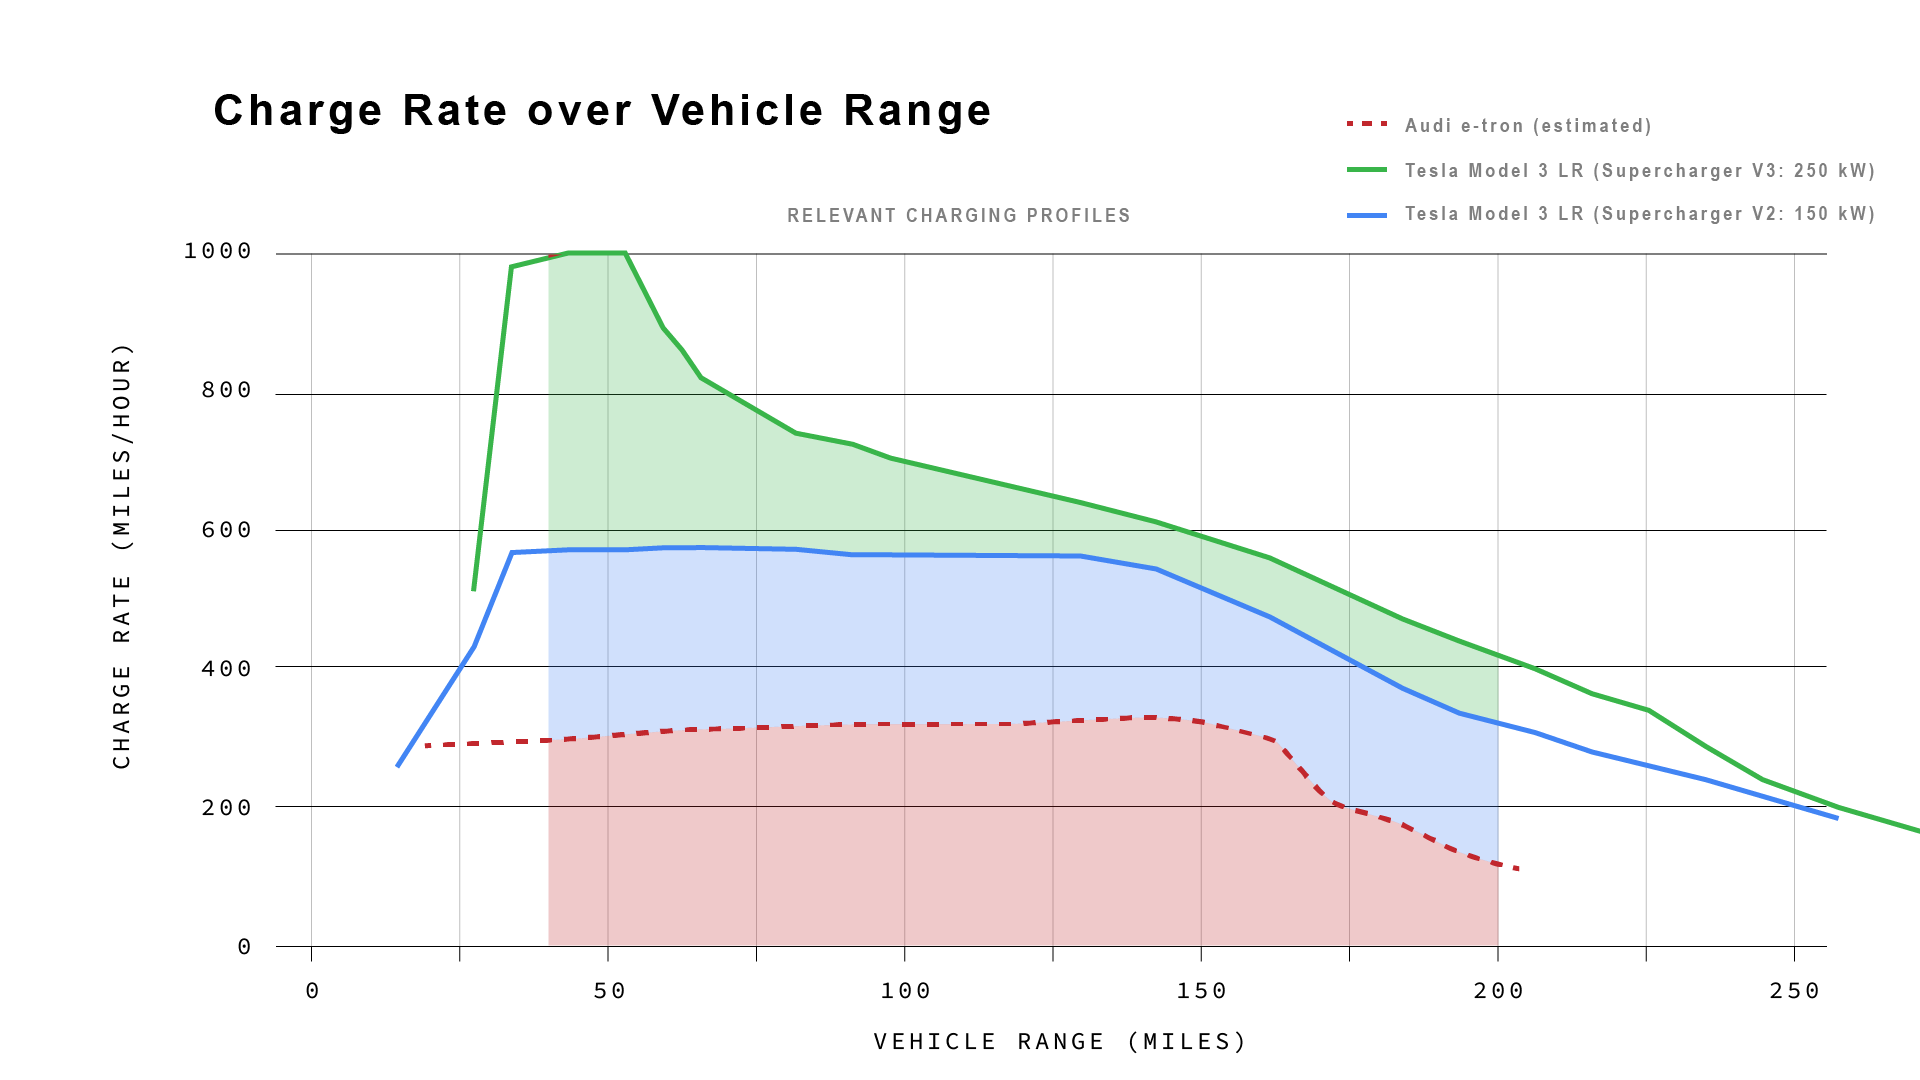 Correcting Audi: Tesla Model 3 Charges Over 2 Times Faster ...